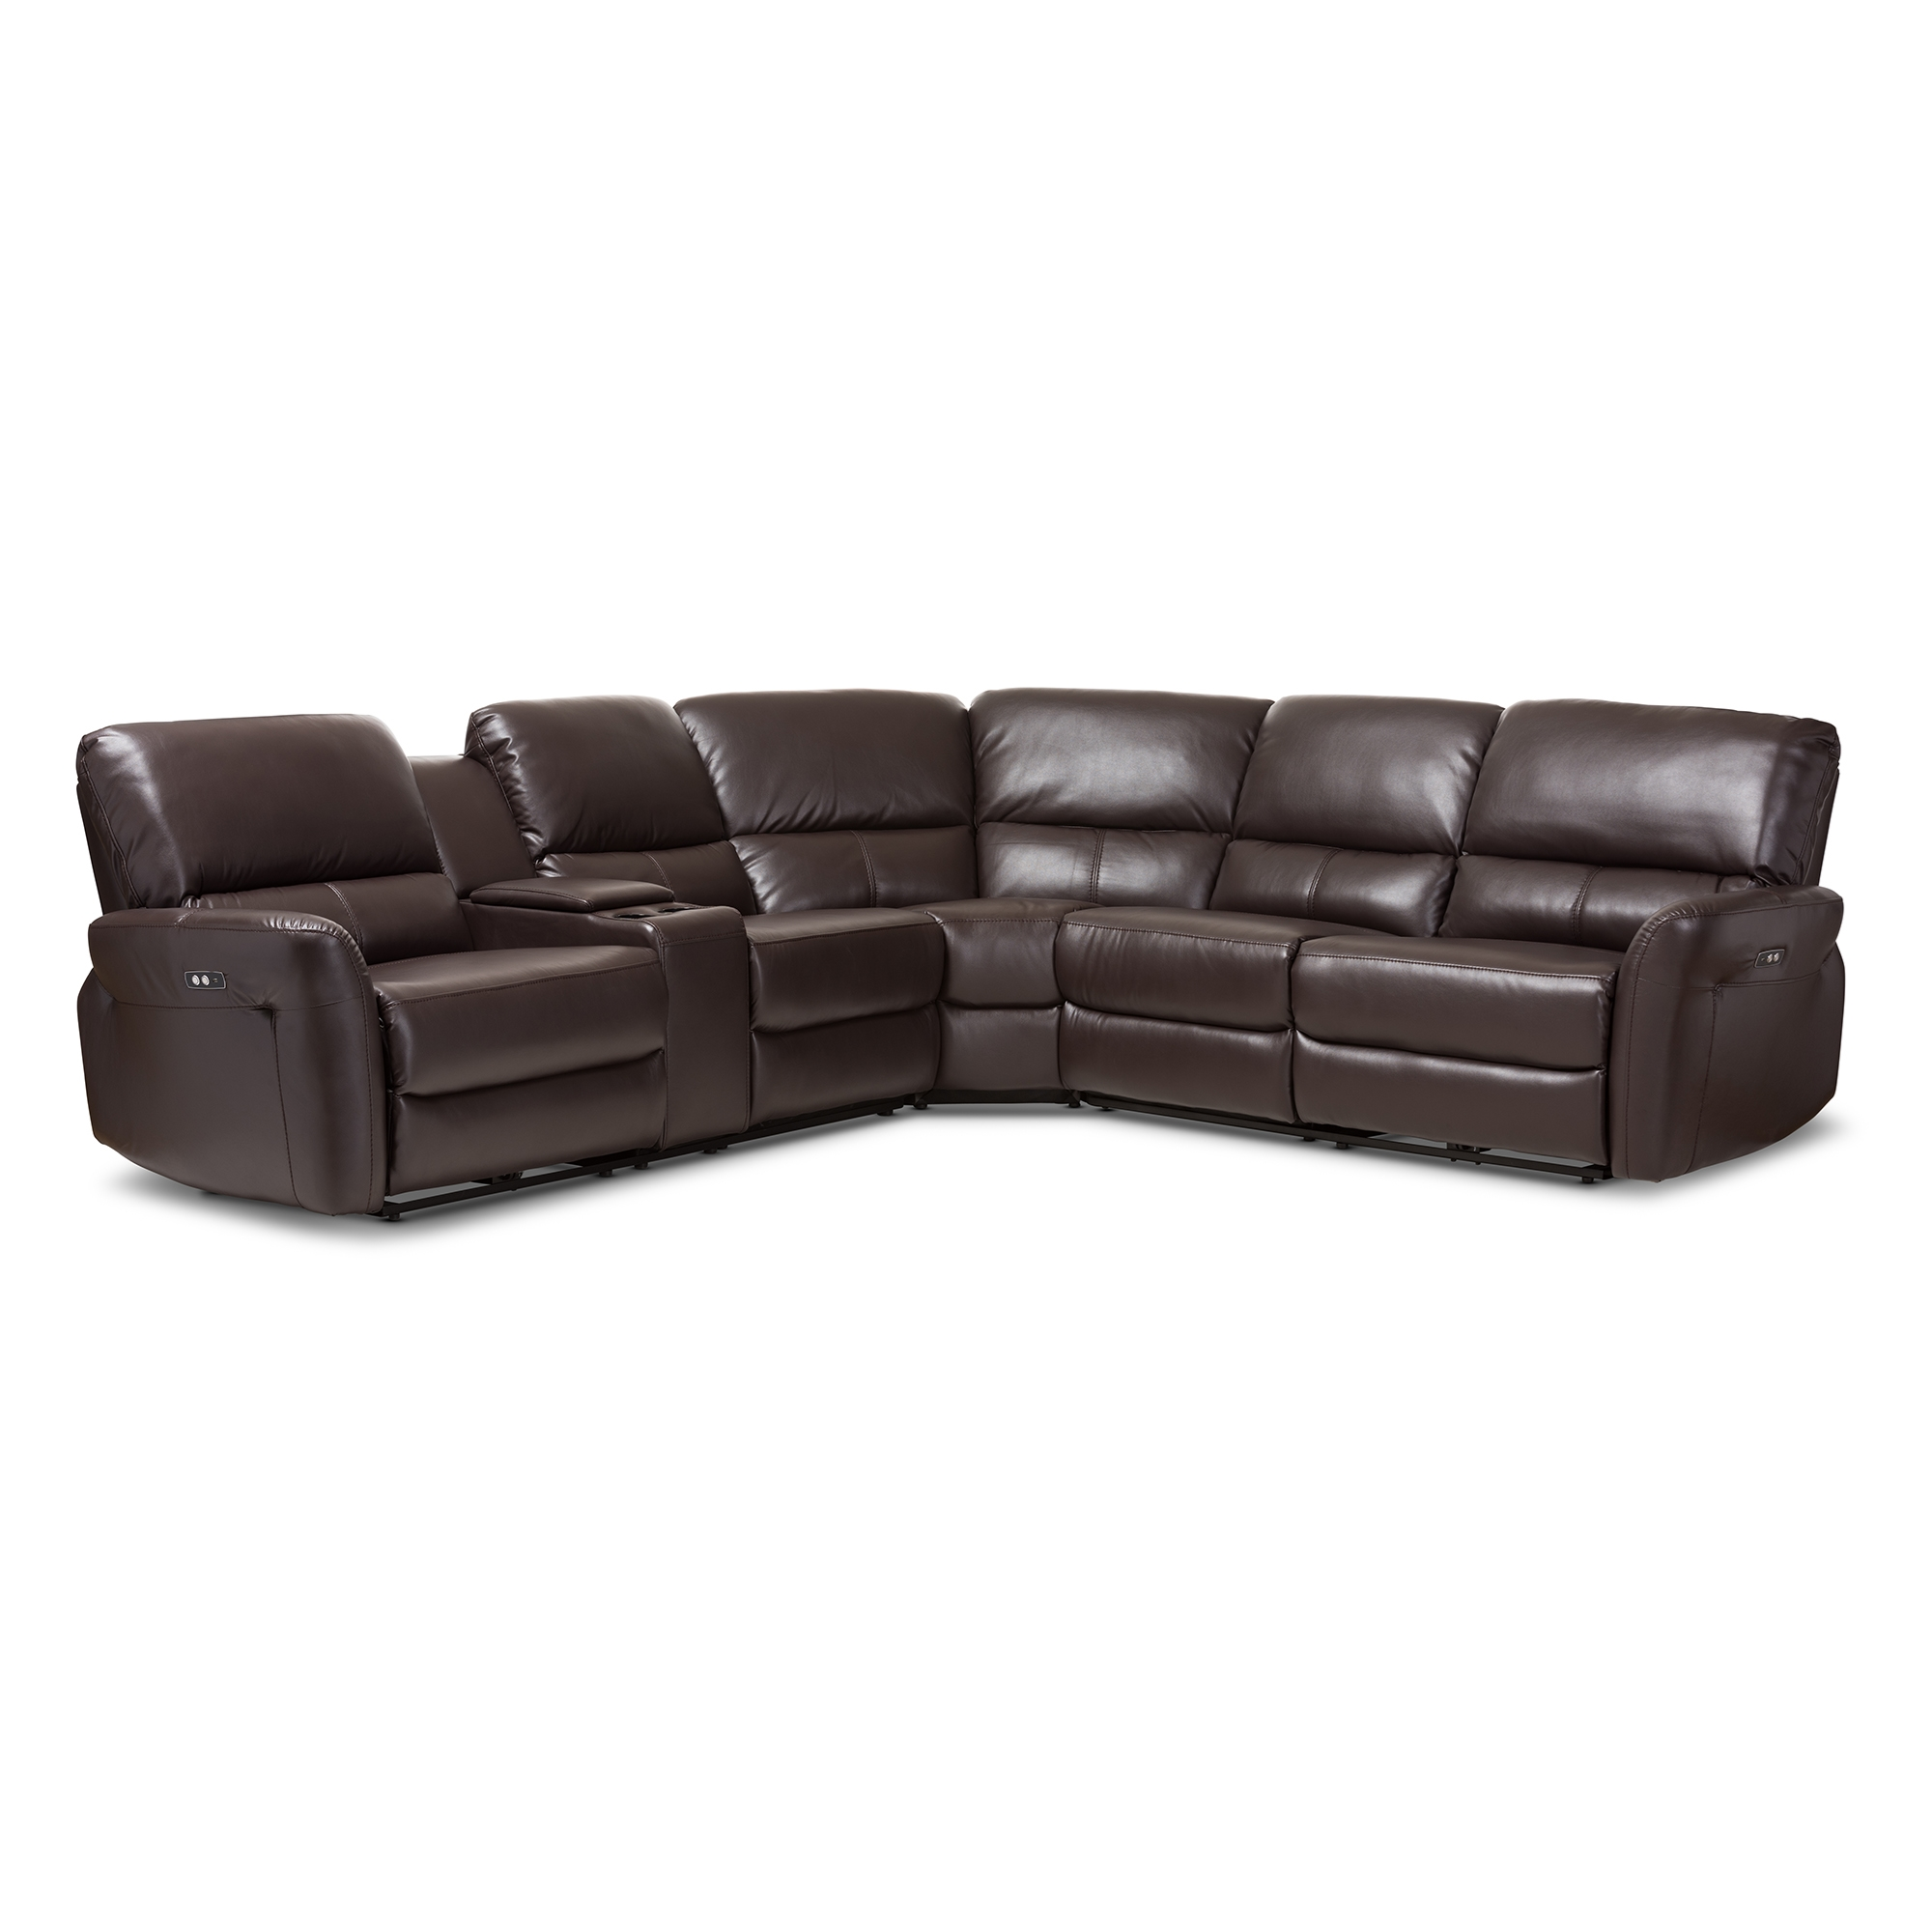 baxton studio amaris modern and dark brown bonded leather 5piece power reclining sectional